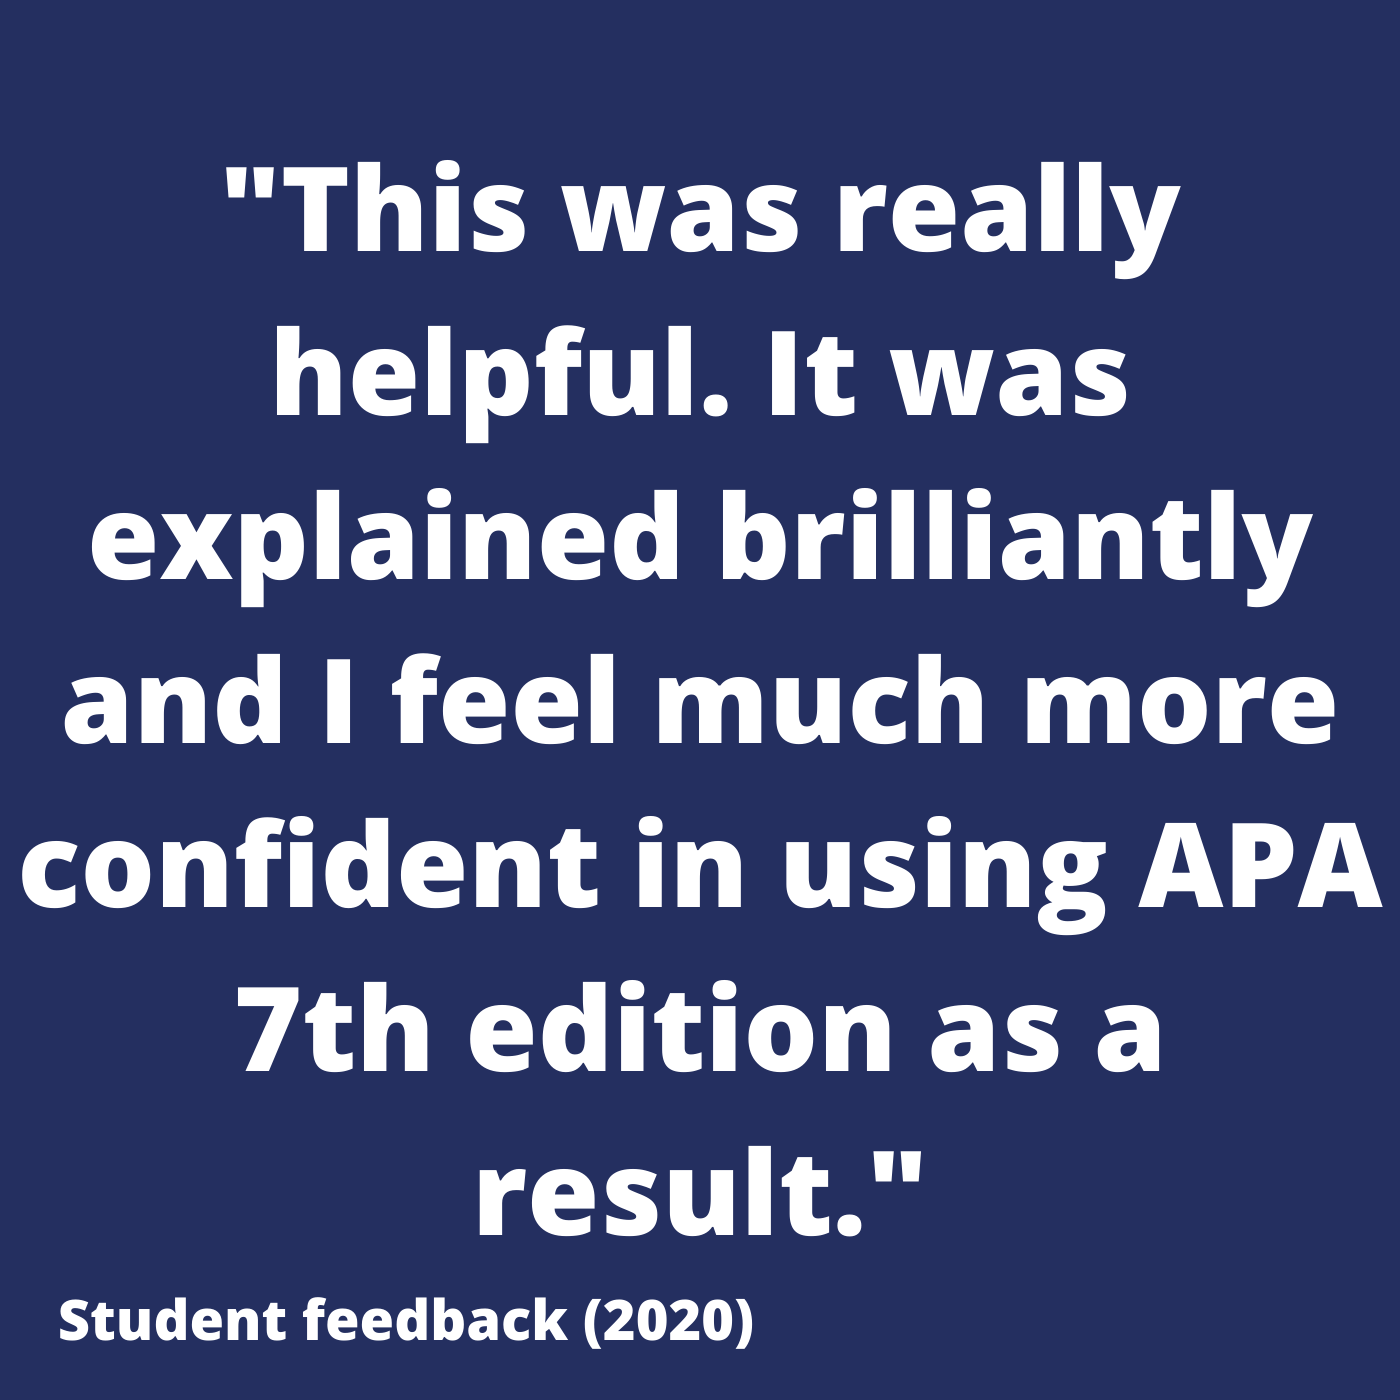 This was really helpful. It was explained brilliantly and I fell much more confident in using APA 7th edition as a result. Student feedback 2020